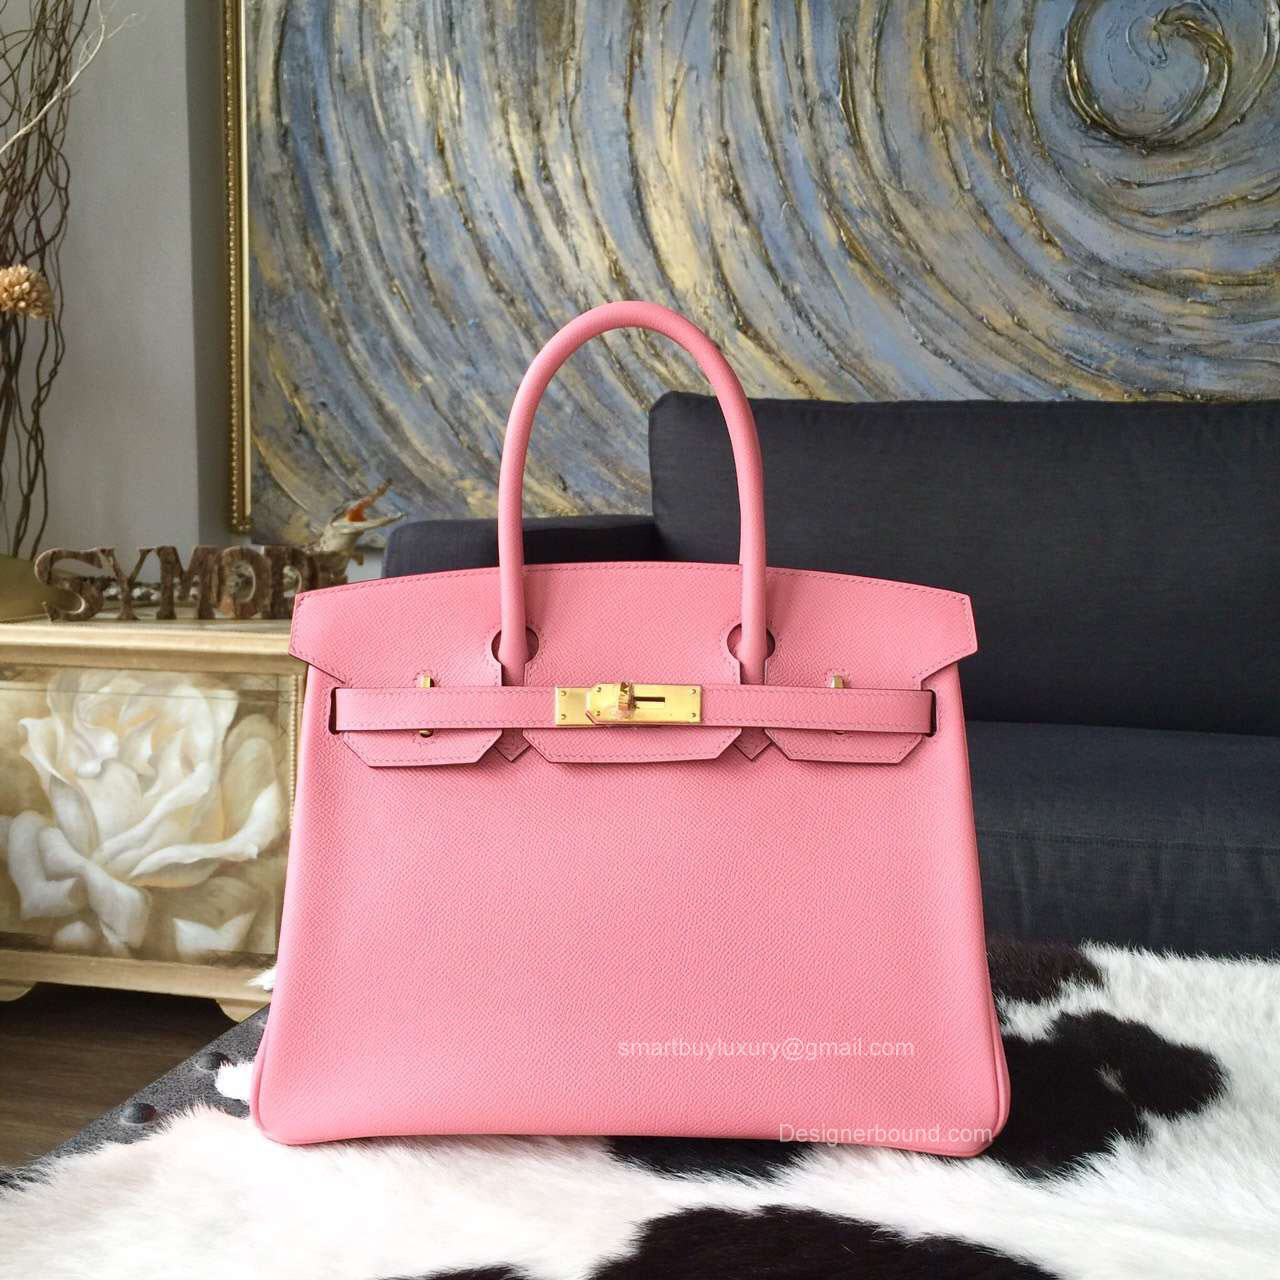 Hermes Birkin 35 Bag Rose Confetti 1q Epsom Leather Handstitched Gold hw